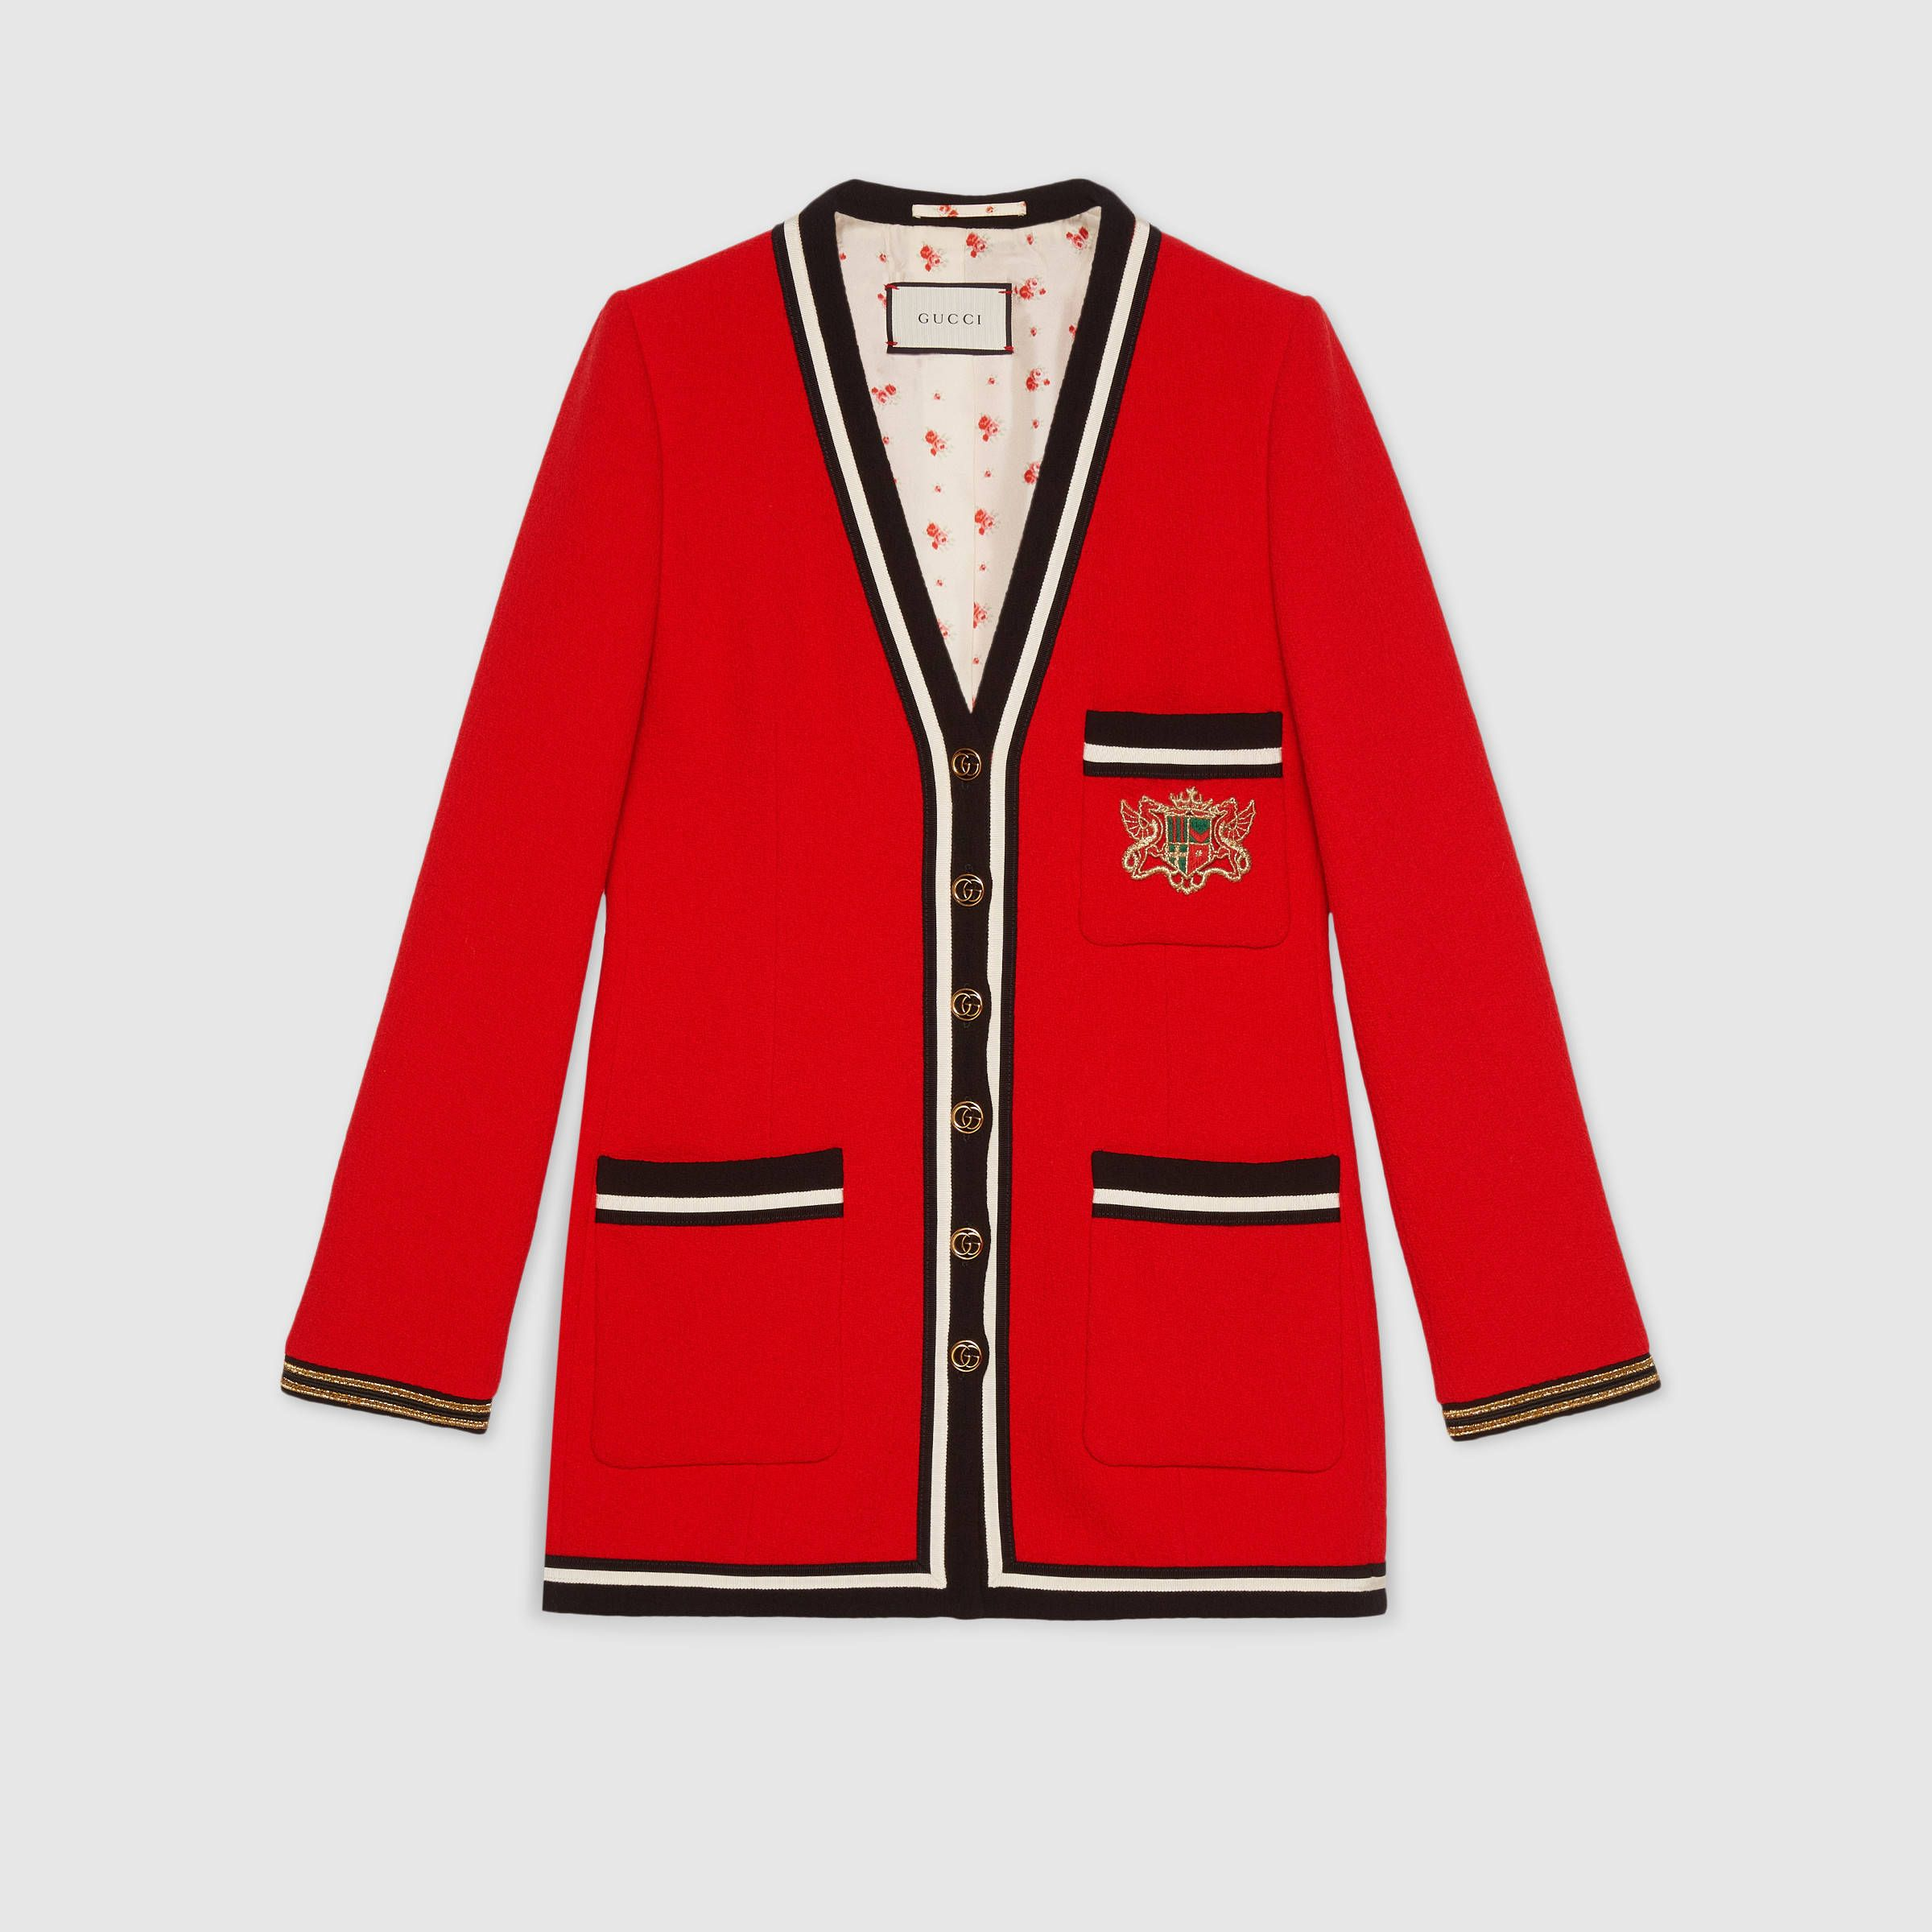 Wool Sable Jacket With Crest Applique Gucci Jackets 509052zkd756266 Jackets Jackets For Women Womens Blazers [ 2400 x 2400 Pixel ]